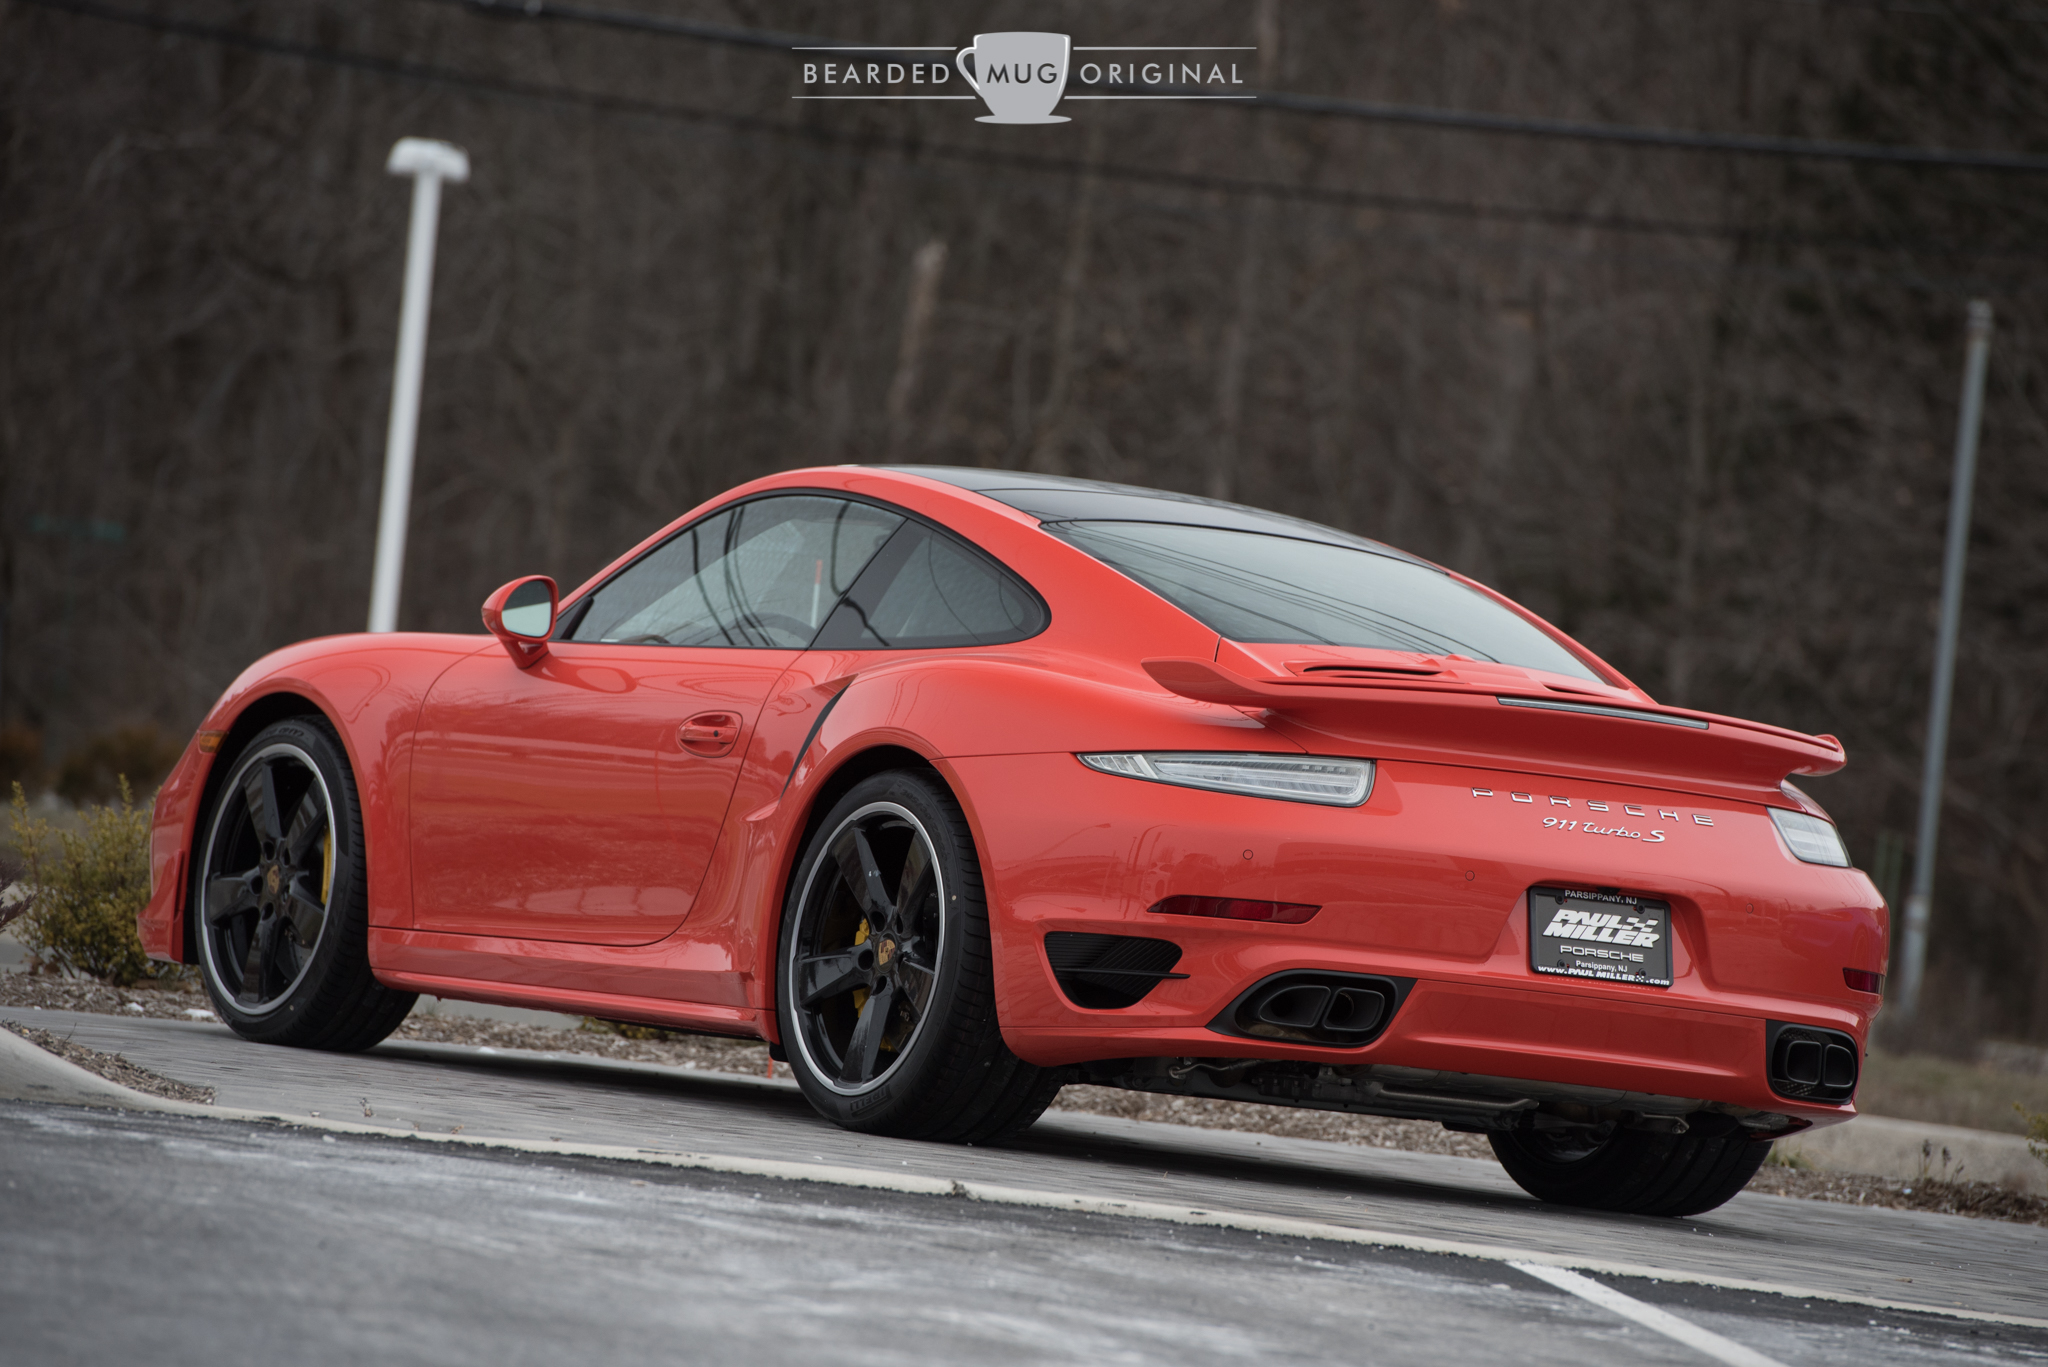 This Lava Orange 991 Turbo is outfitted with a grocery list of extras, including (but not limited to) gloss black wheels and sport mirrors, the aero kit and the glass sunroof. Finding an scantly optioned Porsche is like finding that proverbial needle.